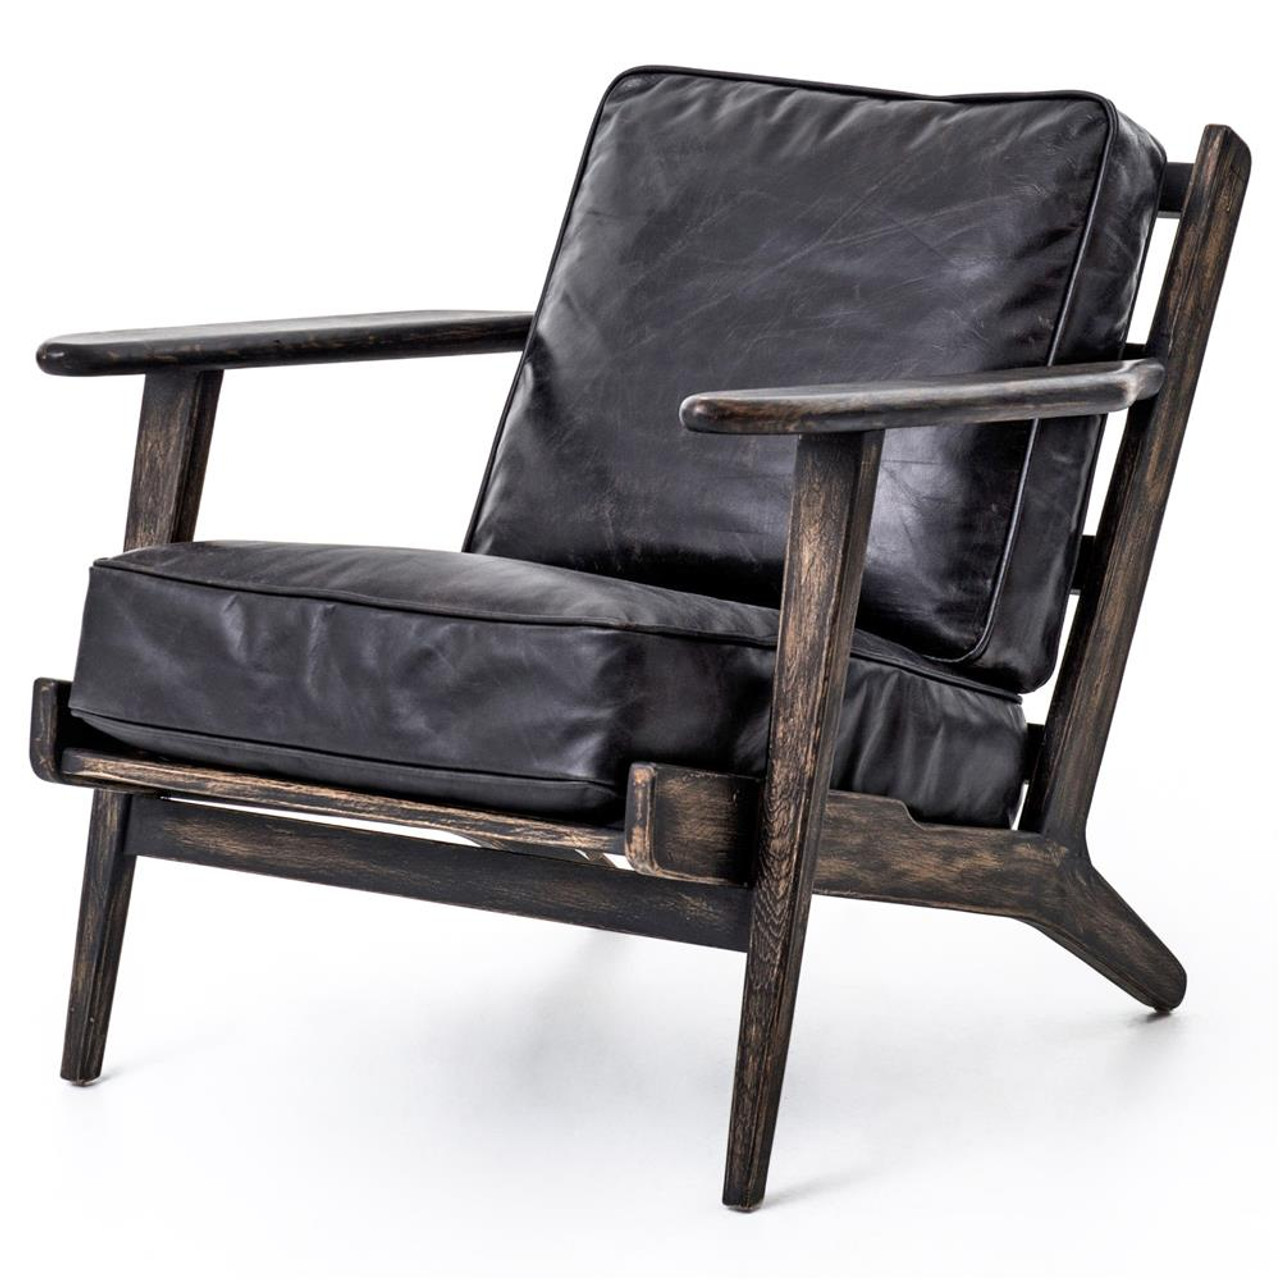 correct posture lounge chair low chairs for living room mid century modern brooks leather zin home